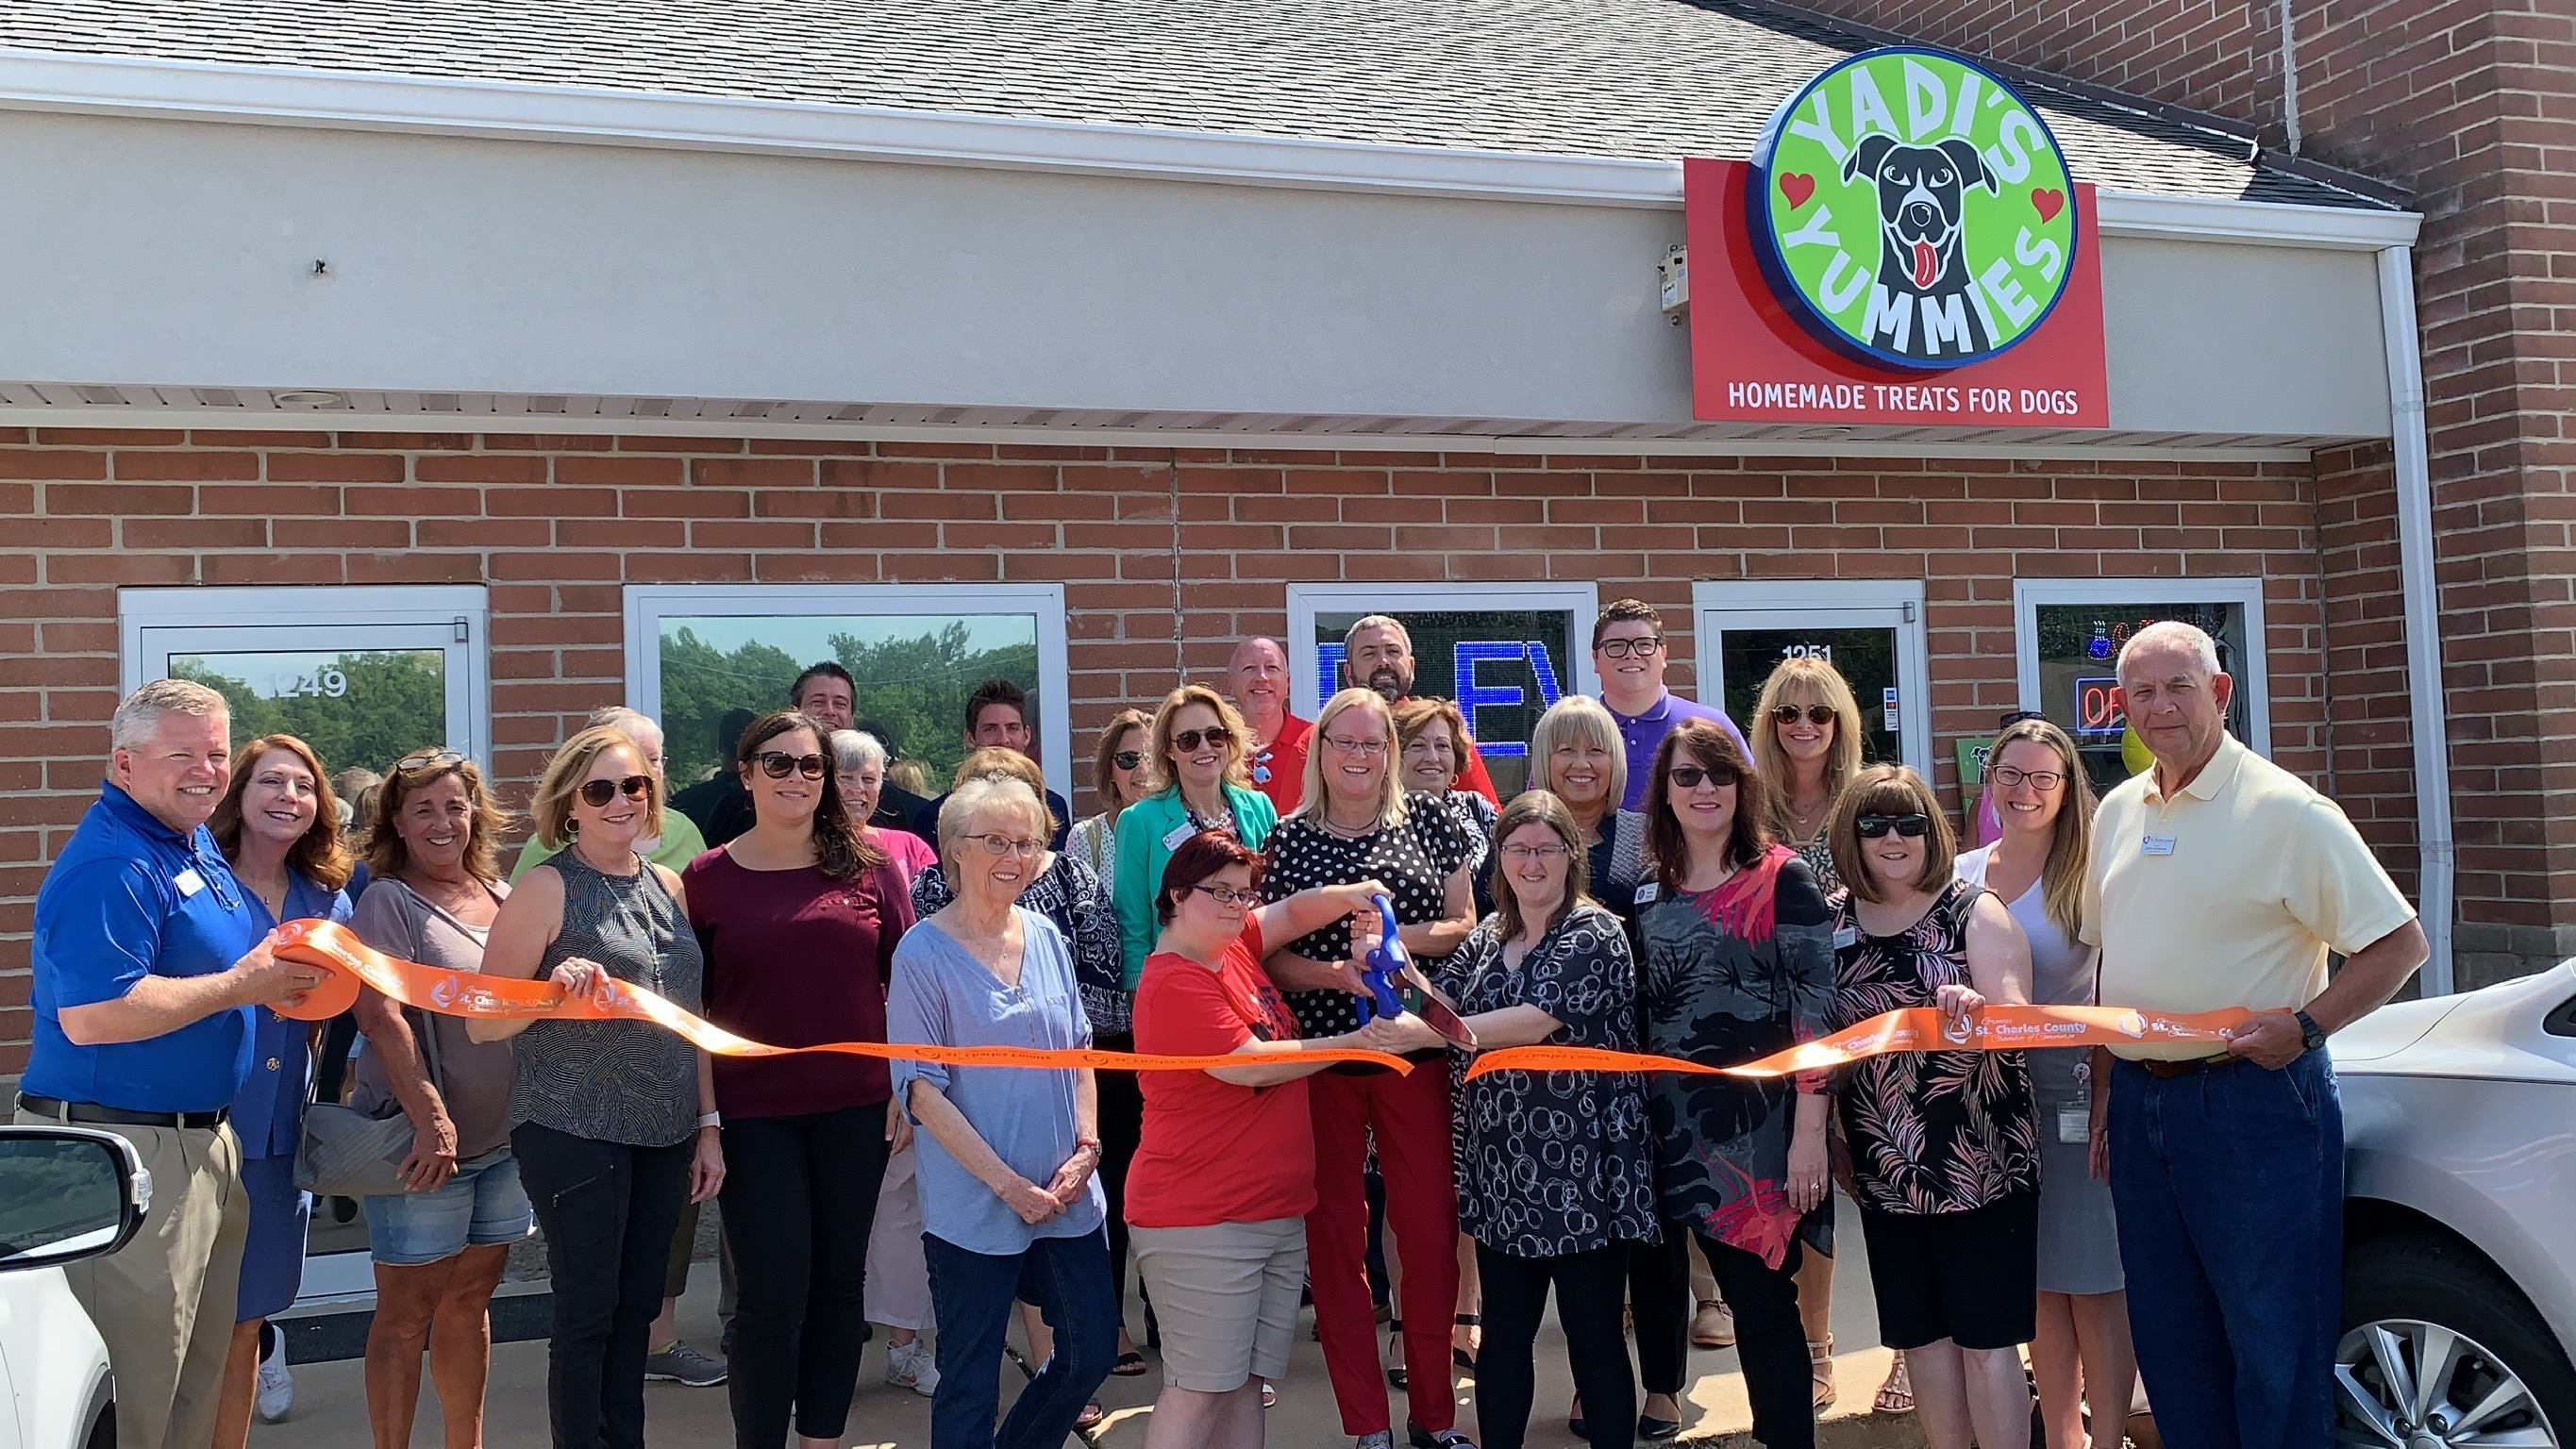 Image for Yadi's Yummies Celebrates Grand Opening with Ribbon Cutting Celebration